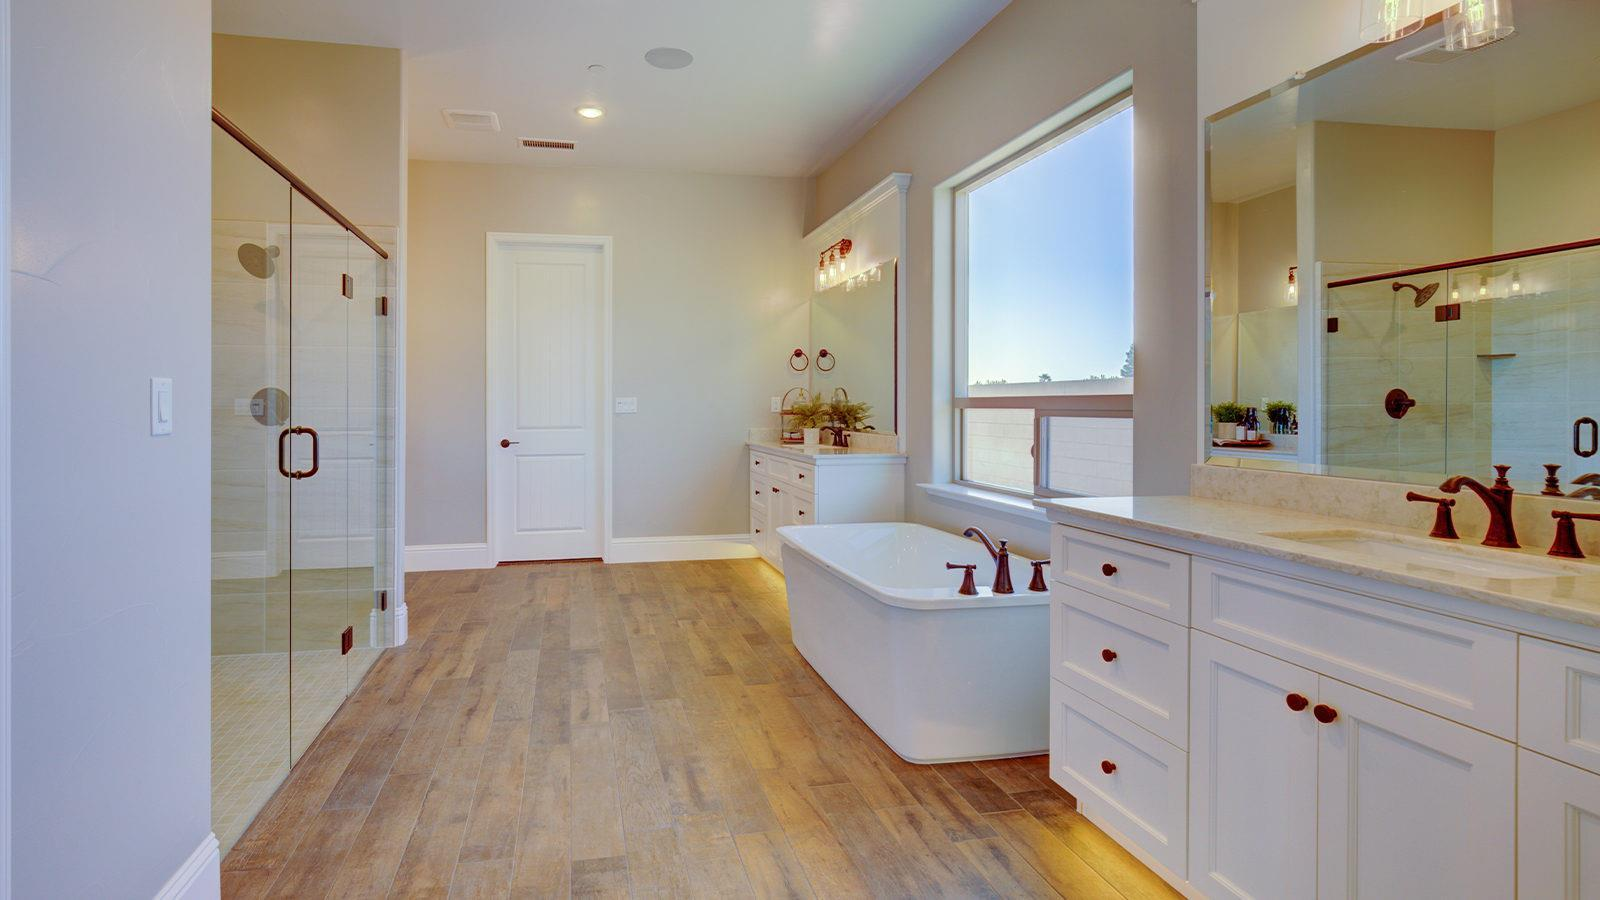 Bathroom featured in the Residence 7 By Granville Homes  in Fresno, CA